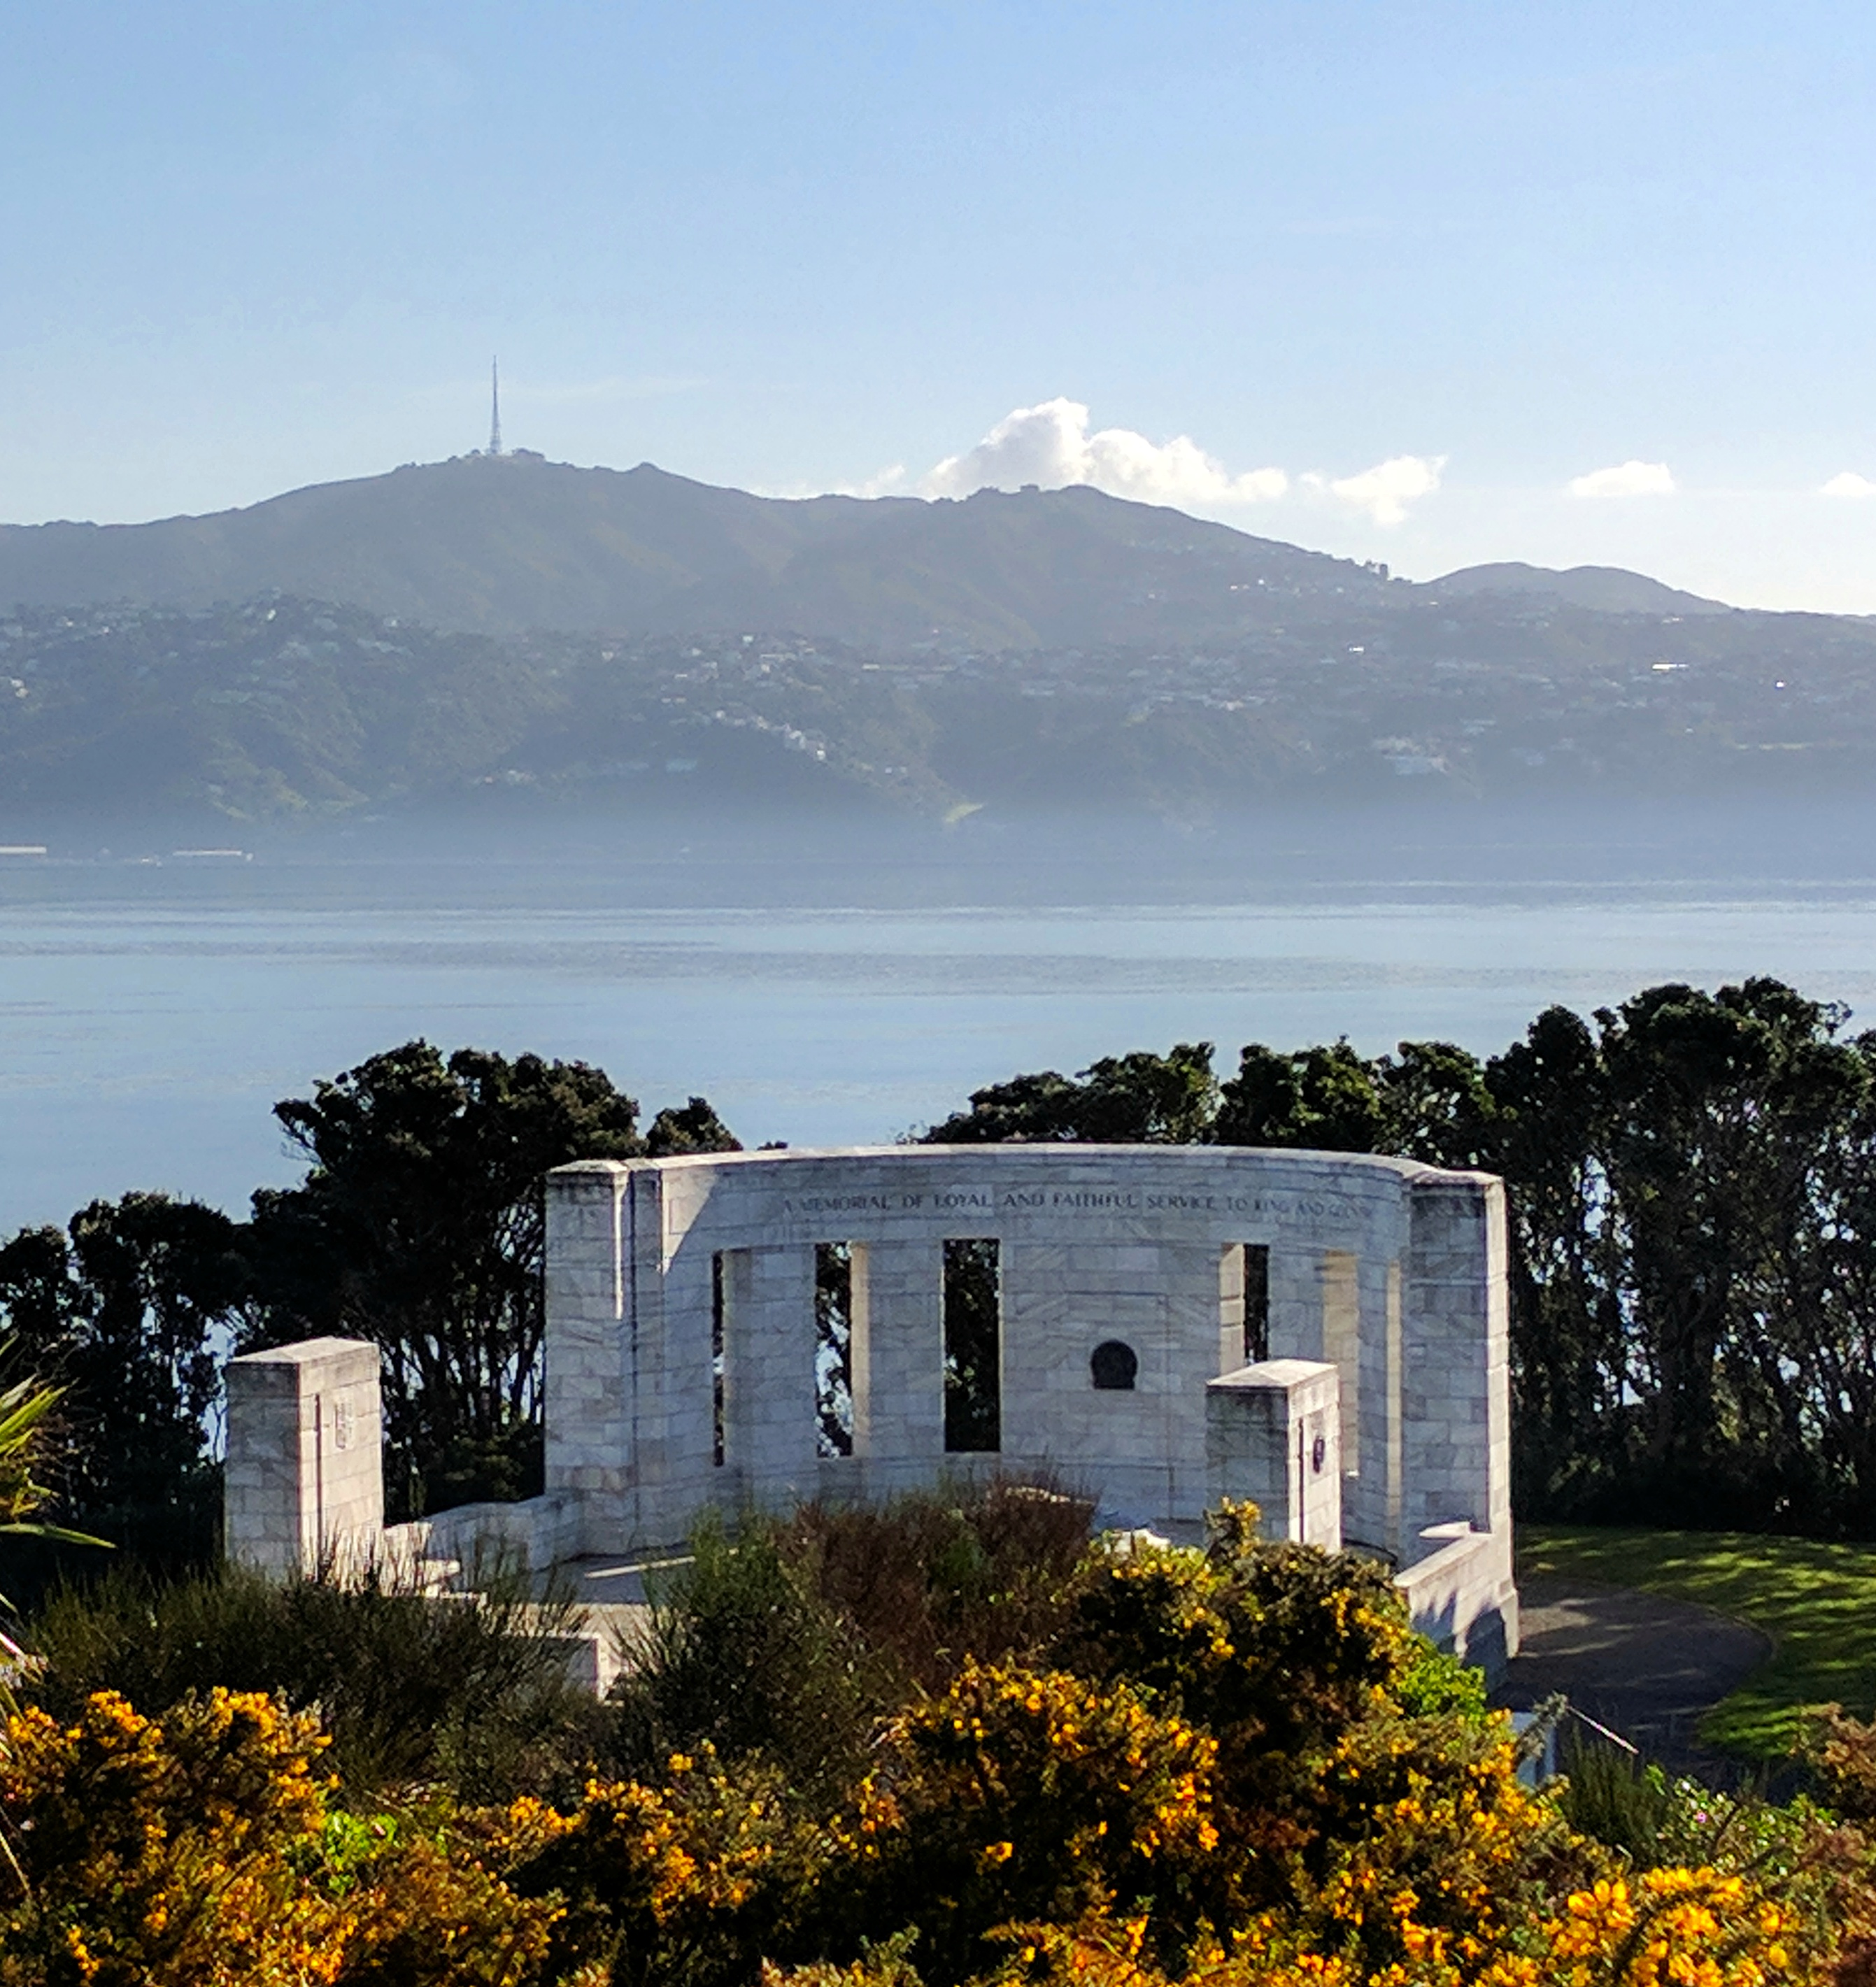 Massey Memorial, Maupuia and a very calm Wellington harbour